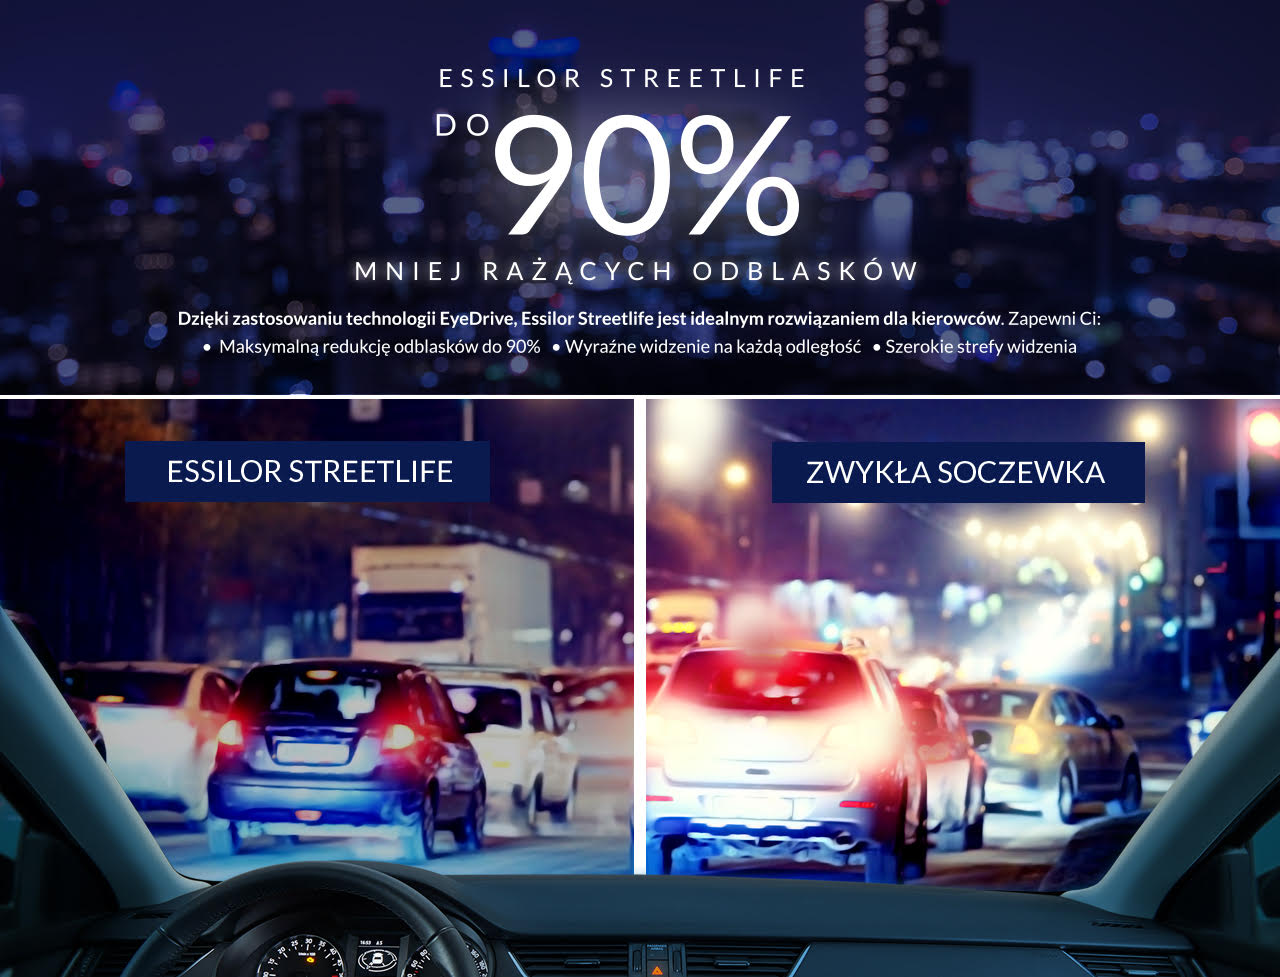 Essilor Streetlife